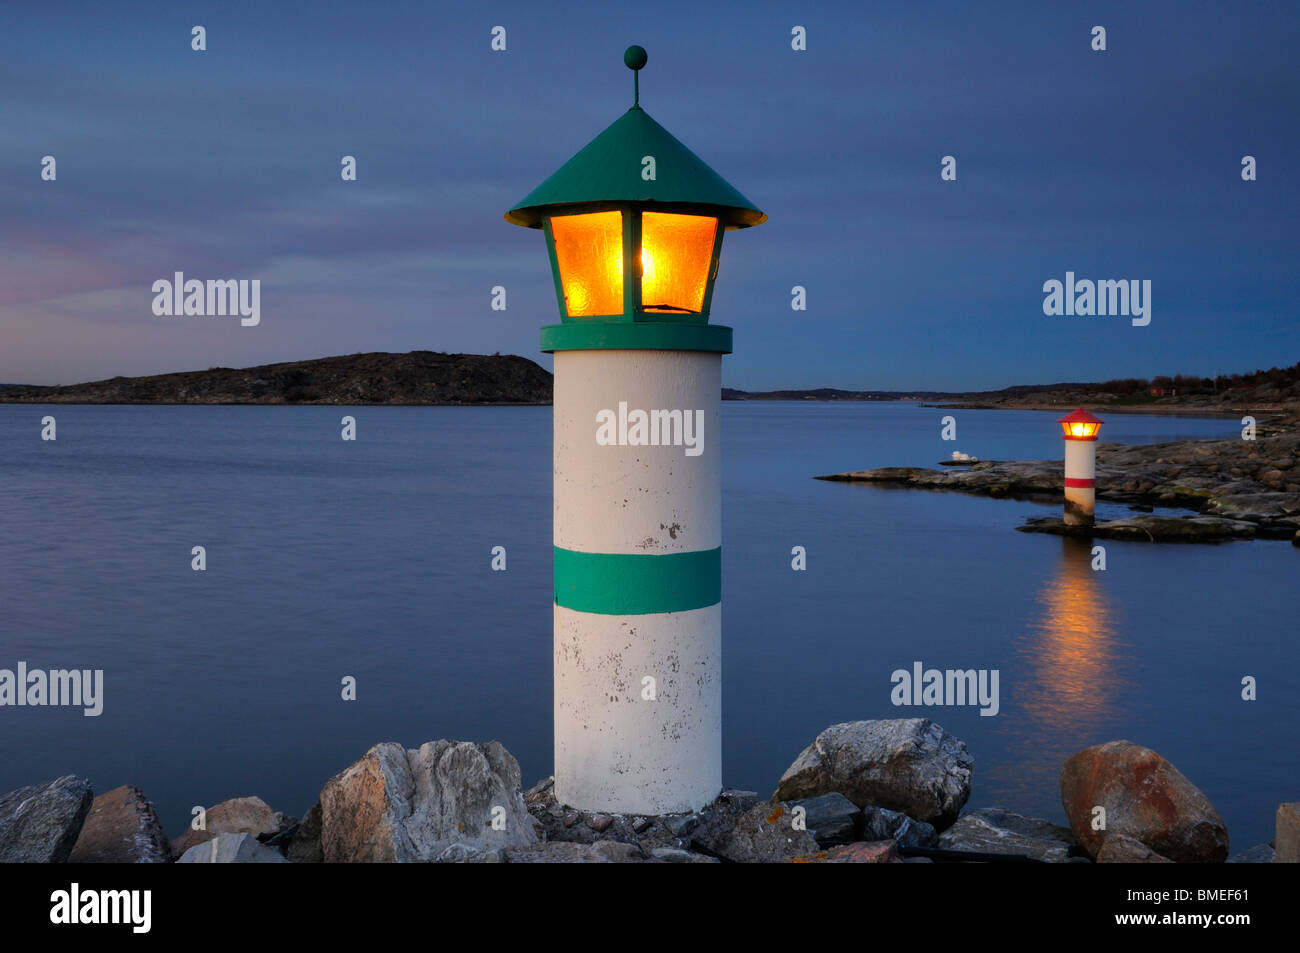 Scandinavia, Sweden, Vastkusten, View of illuminated lighthouse on sea - Stock Image